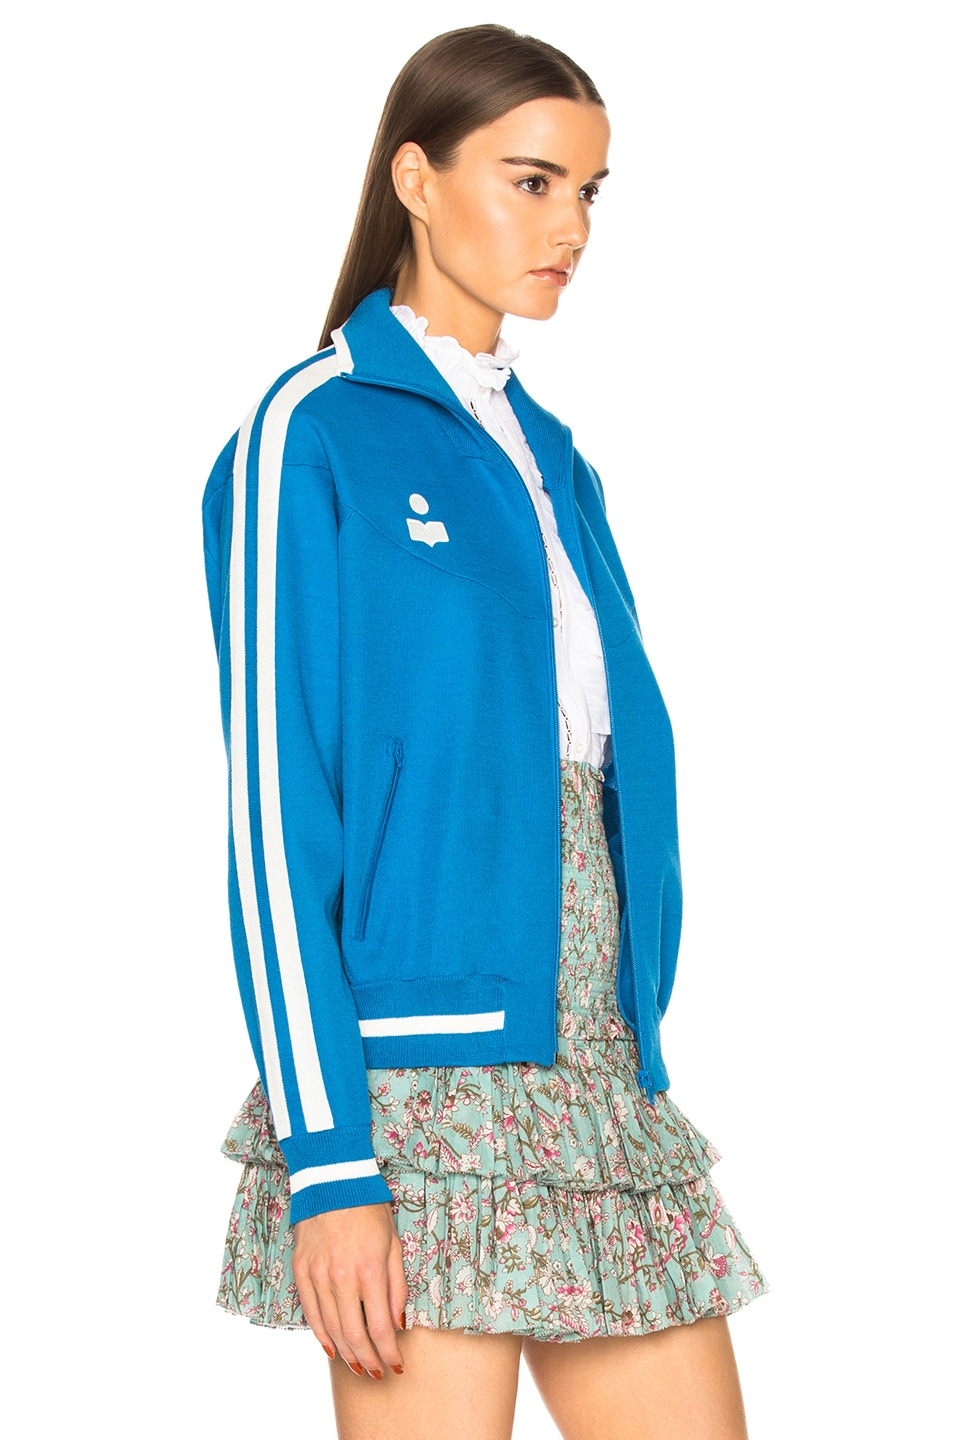 Isabel Marant Etoile Darcy Sporty Knit Track Jacket in Electric Blue